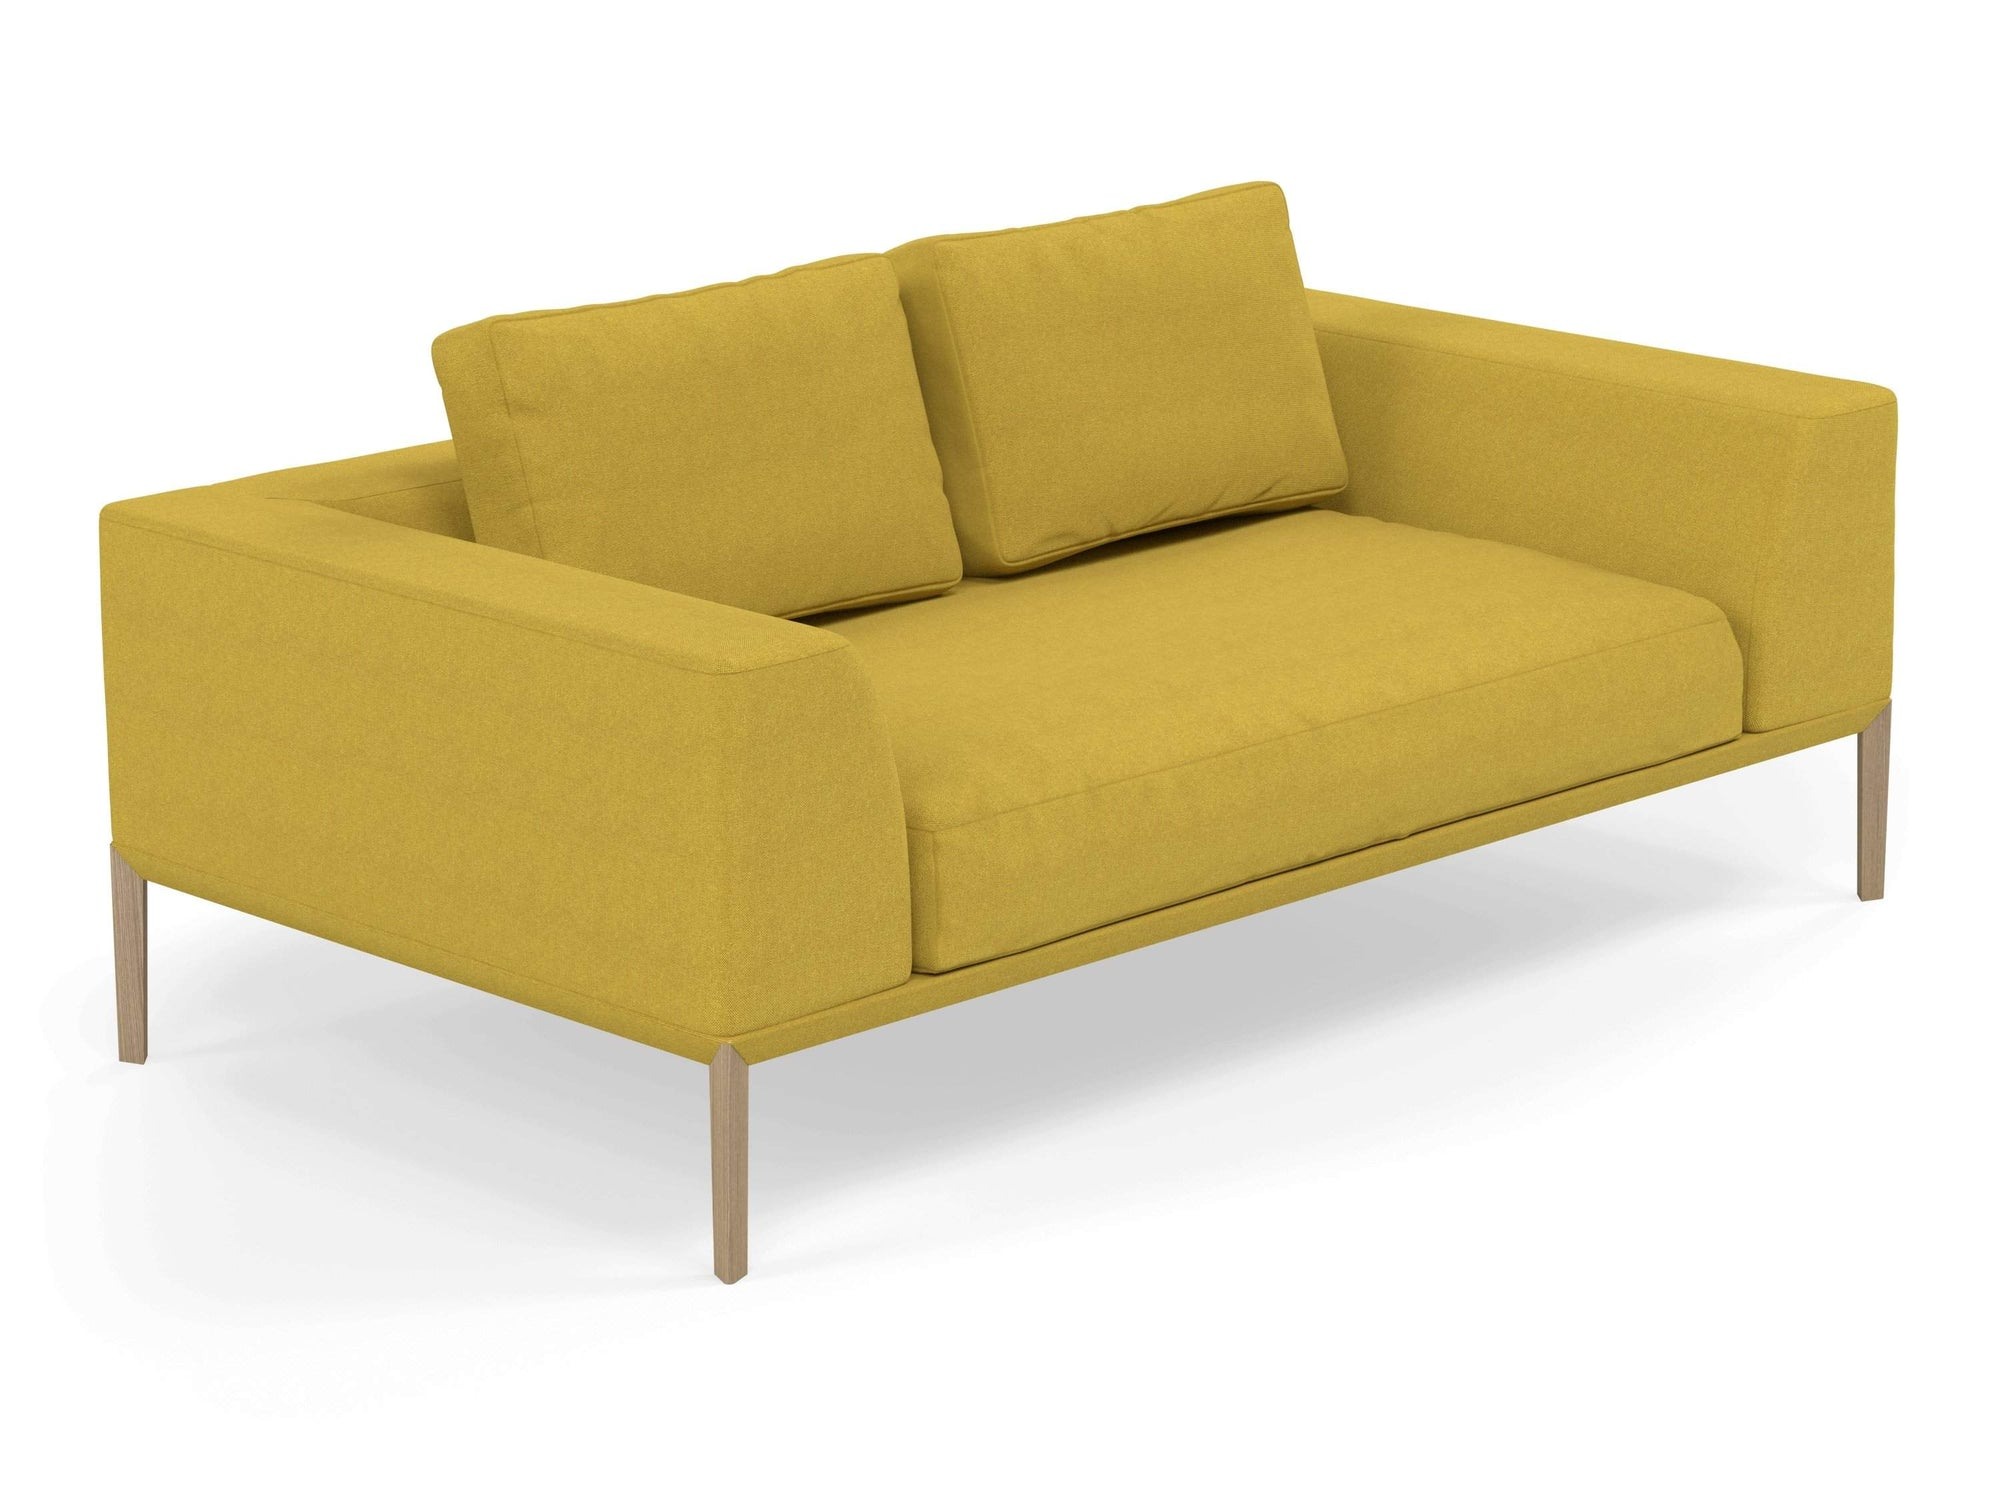 Modern 2 Seater Sofa with 2 Armrests in Vibrant Mustard Yellow Fabric-Natural Oak-Distinct Designs (London) Ltd